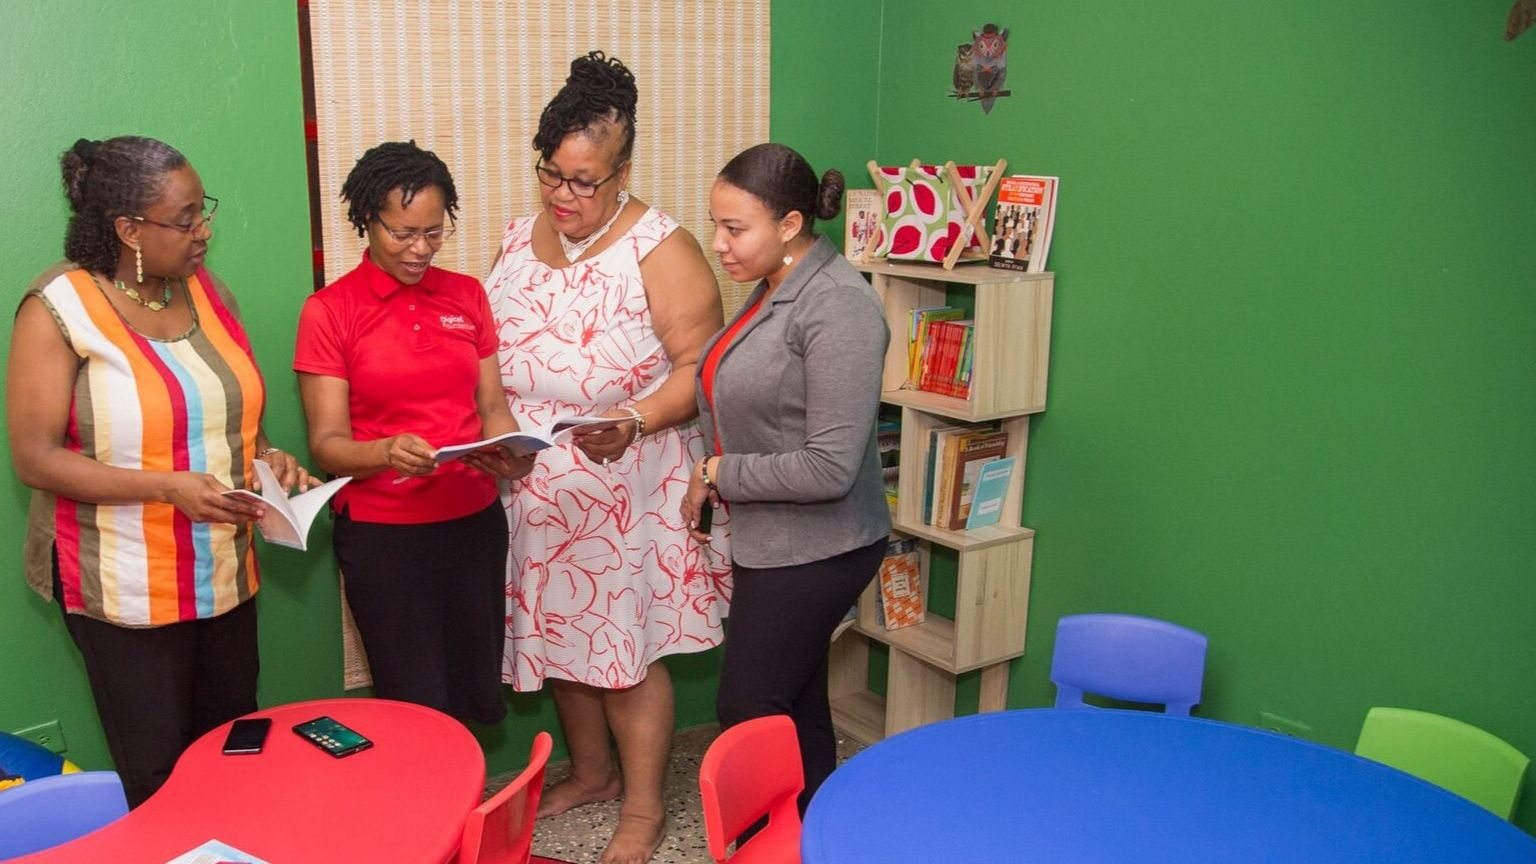 Alicia Hospedales, Digicel Foundation Strategic Partnership Officer (2nd from left) reviews one of the books at the newly opened Reading Room. Also sharing in the moment are Raisa Belcon, Secretary of the Beausejour Community Council (from left) Susan Hong, Chairman of the Diego Martin Regional Corporation and Elizabeth Belcon, President of the Beausejour Community Council.